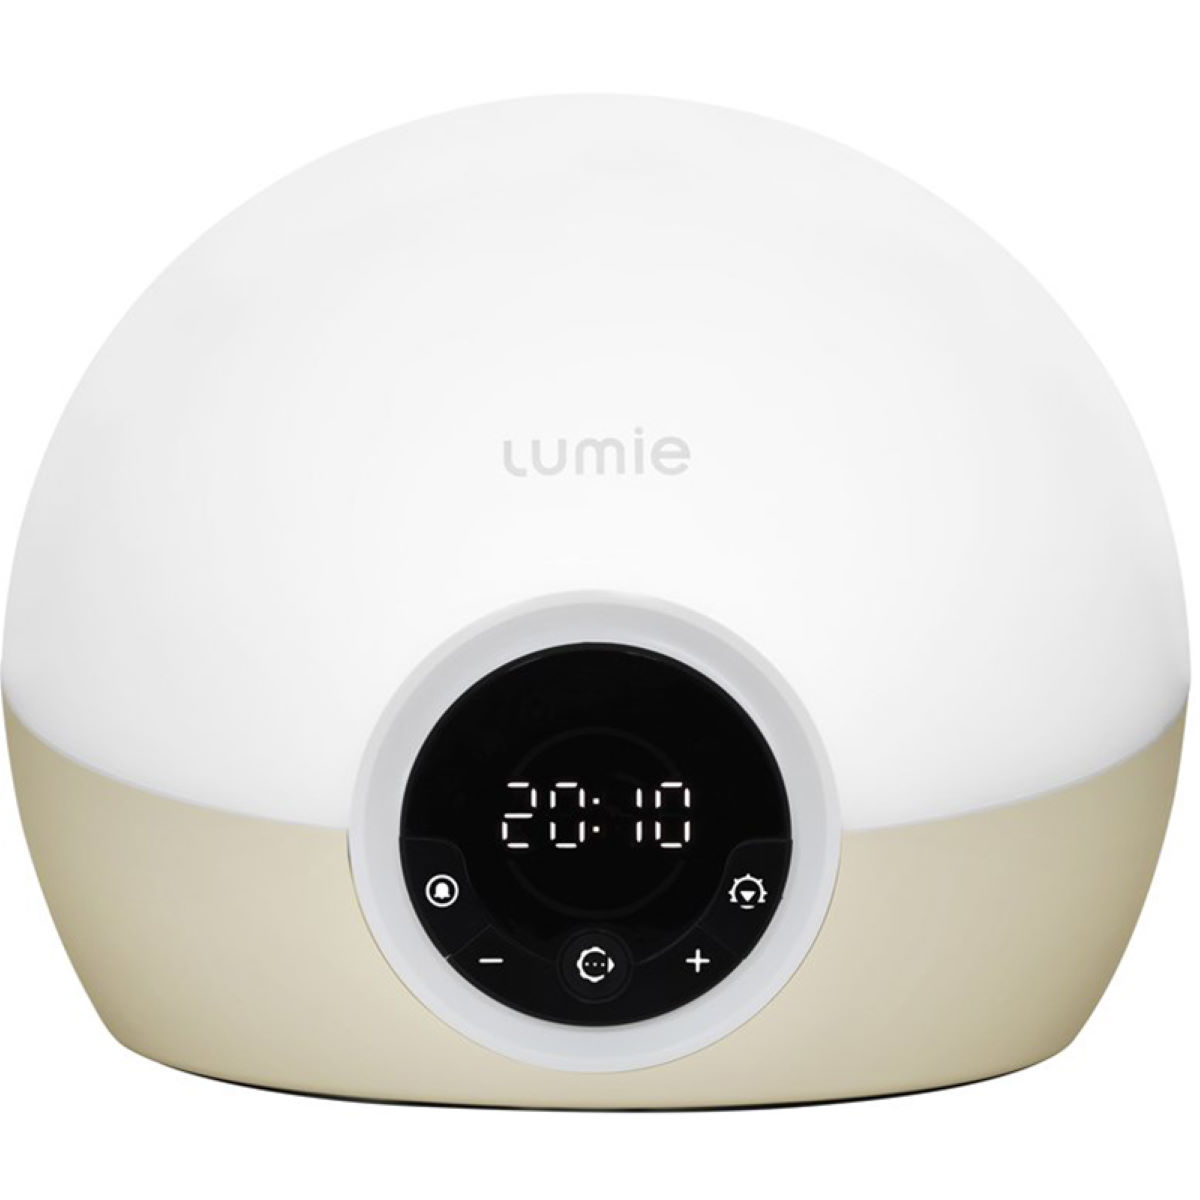 Lumie Lumie Bodyclock Spark 100 Wake-up Light Alarm   Alarm Clocks